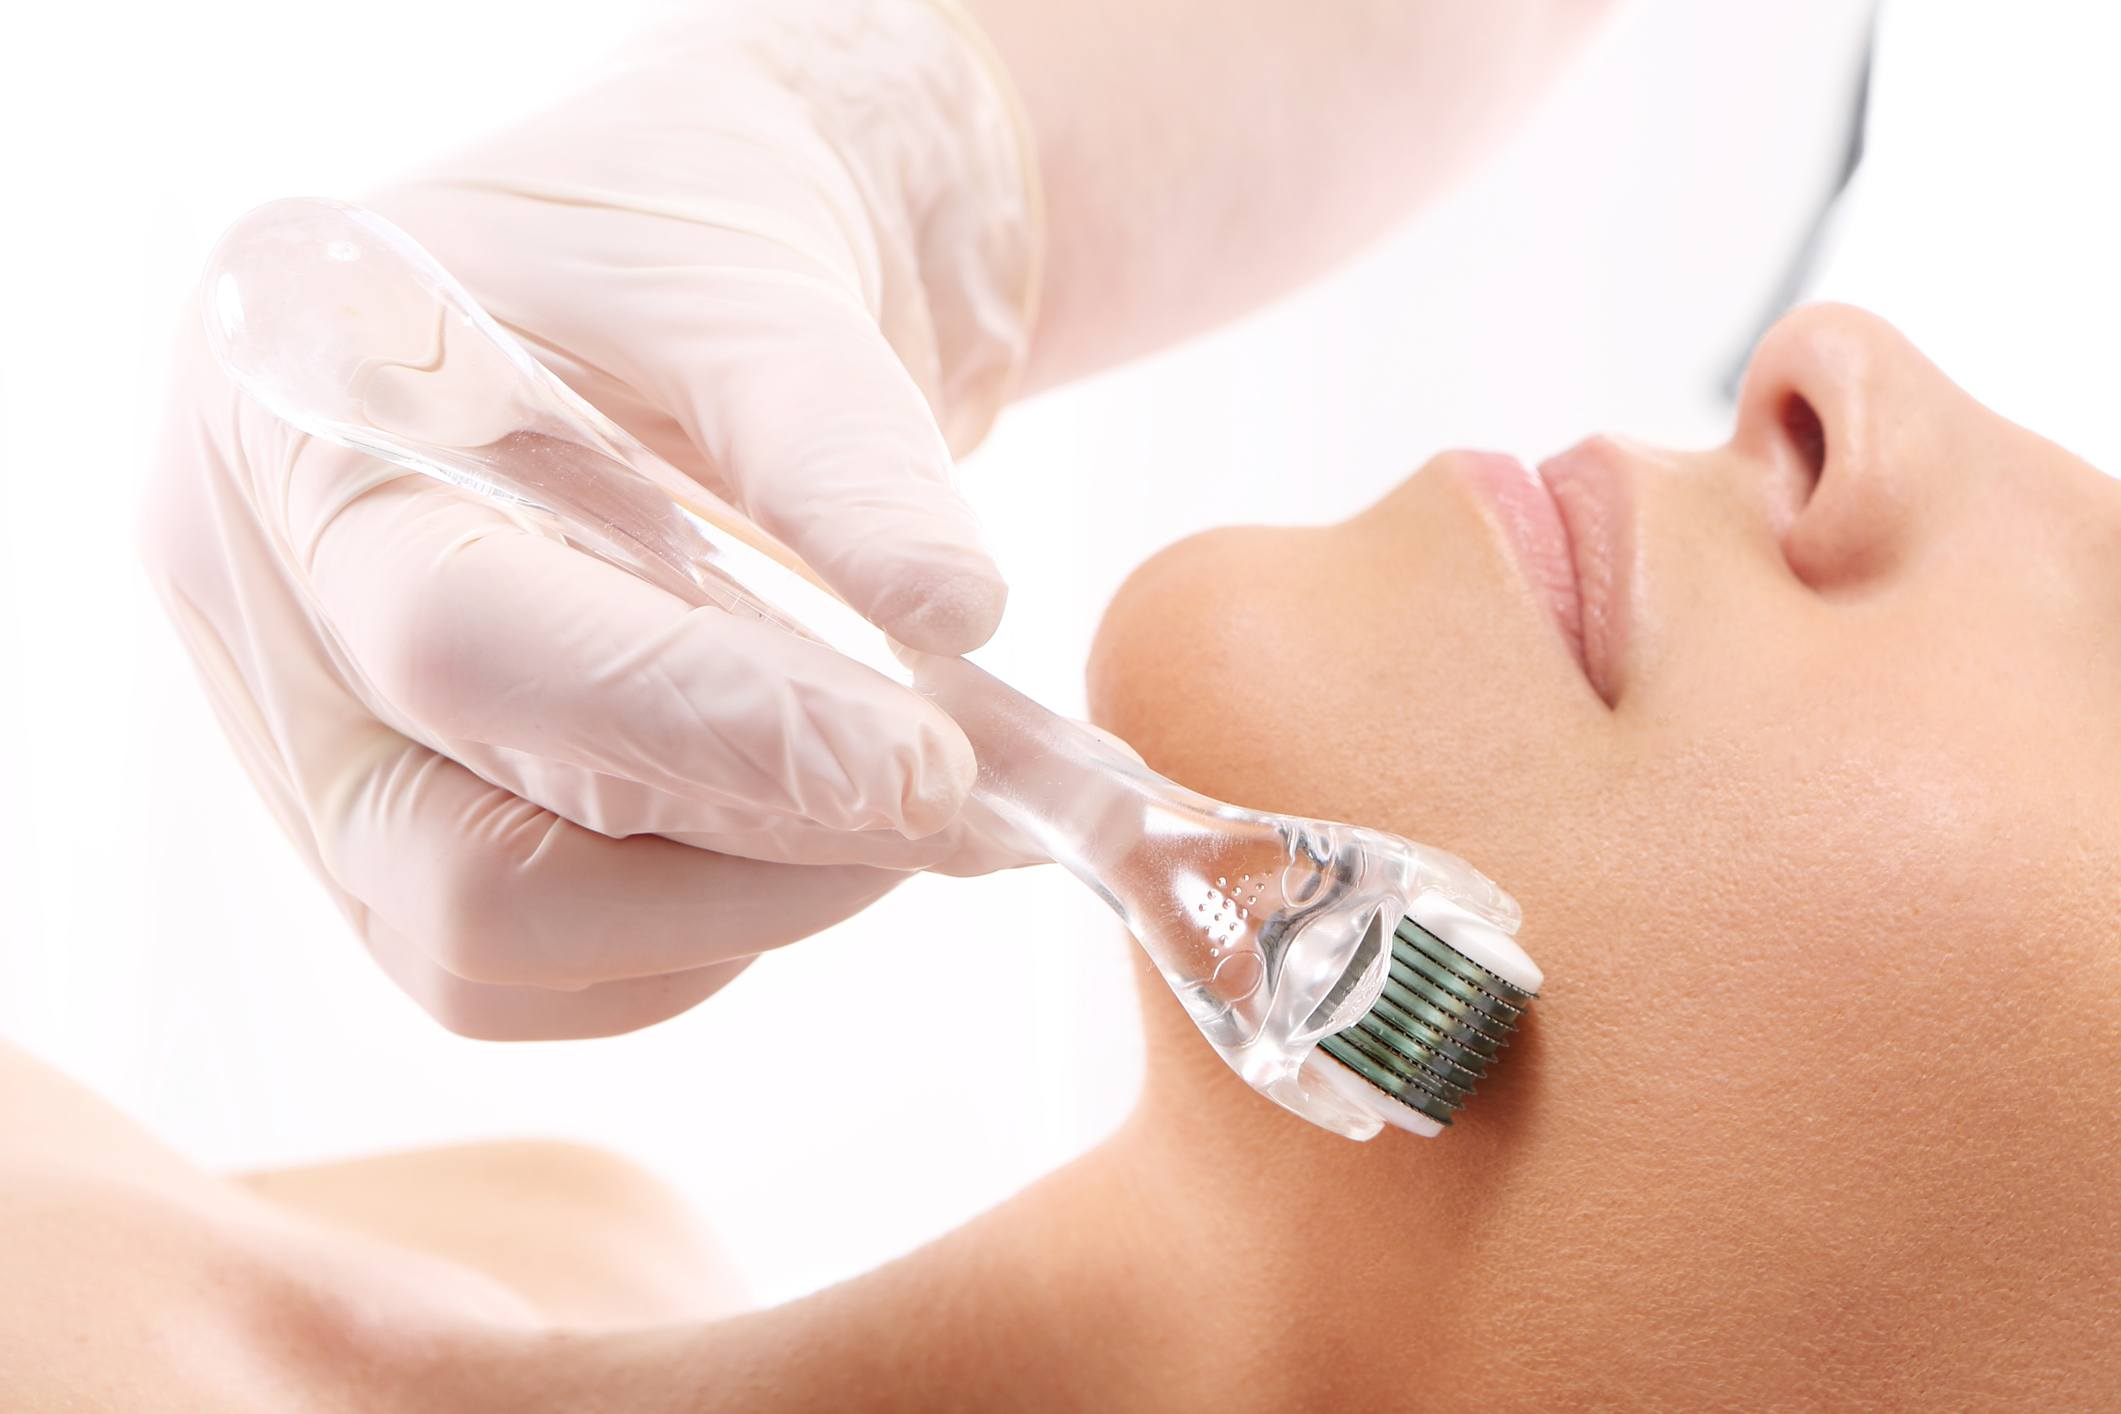 Micro-needling or Derma-rolling